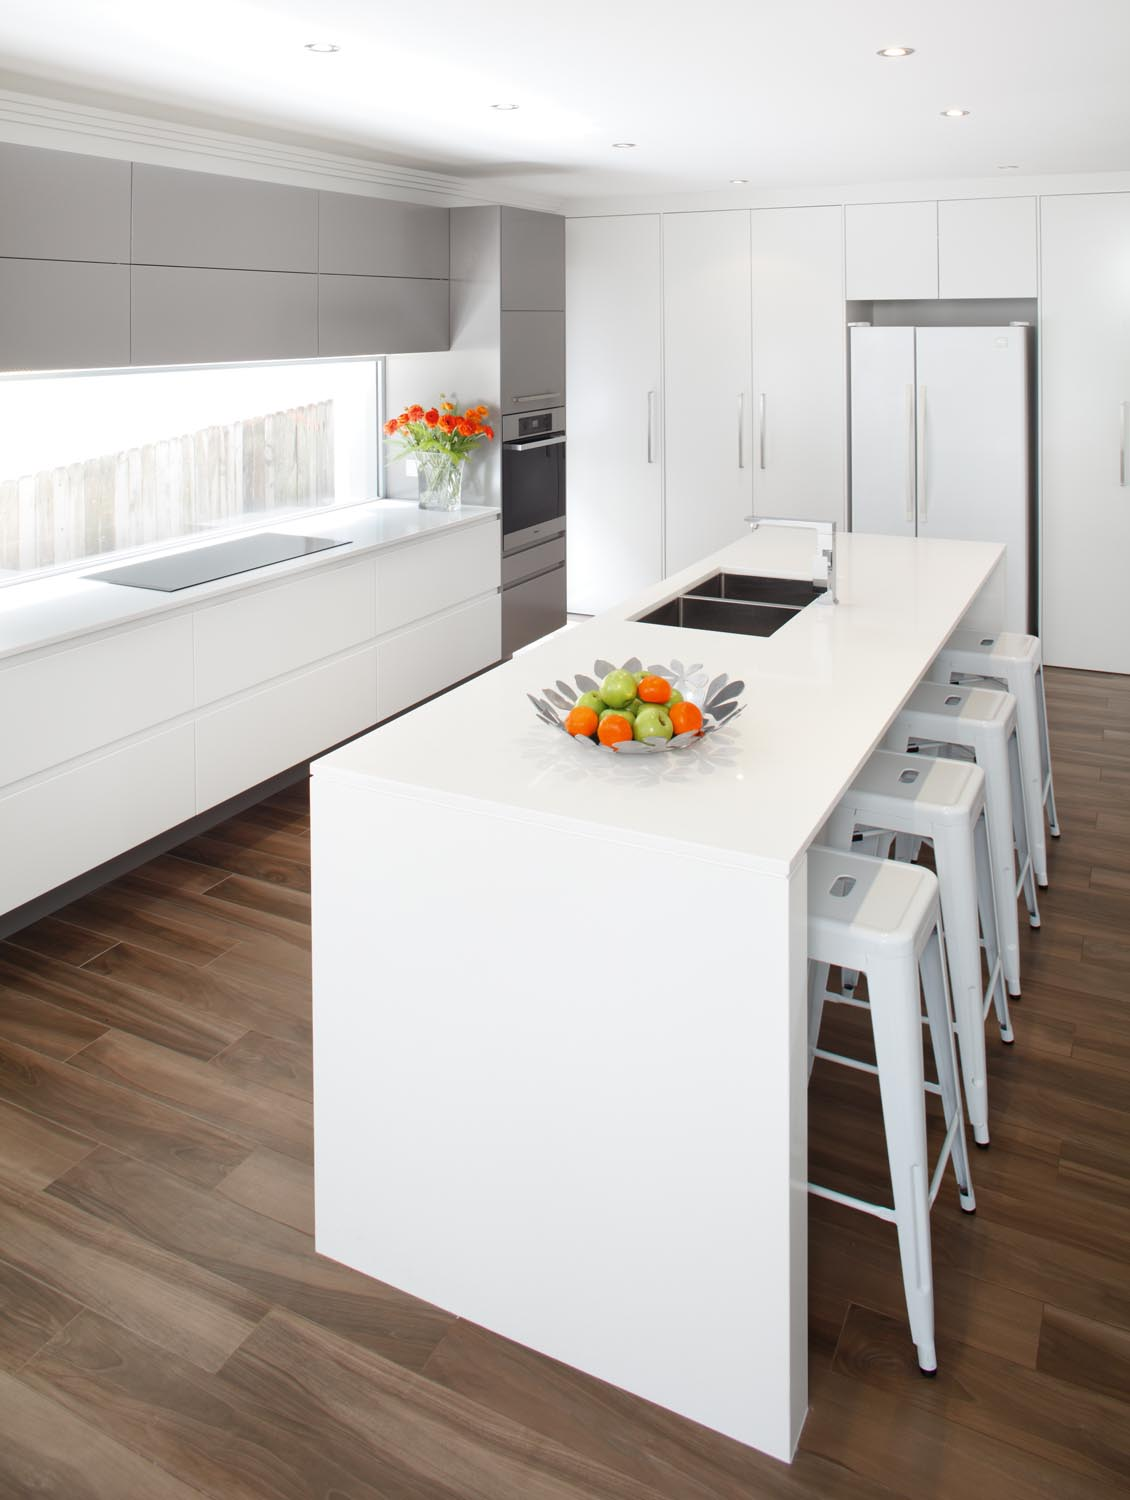 Sleek modern kitchen completehome for Sleek modern kitchen cabinets